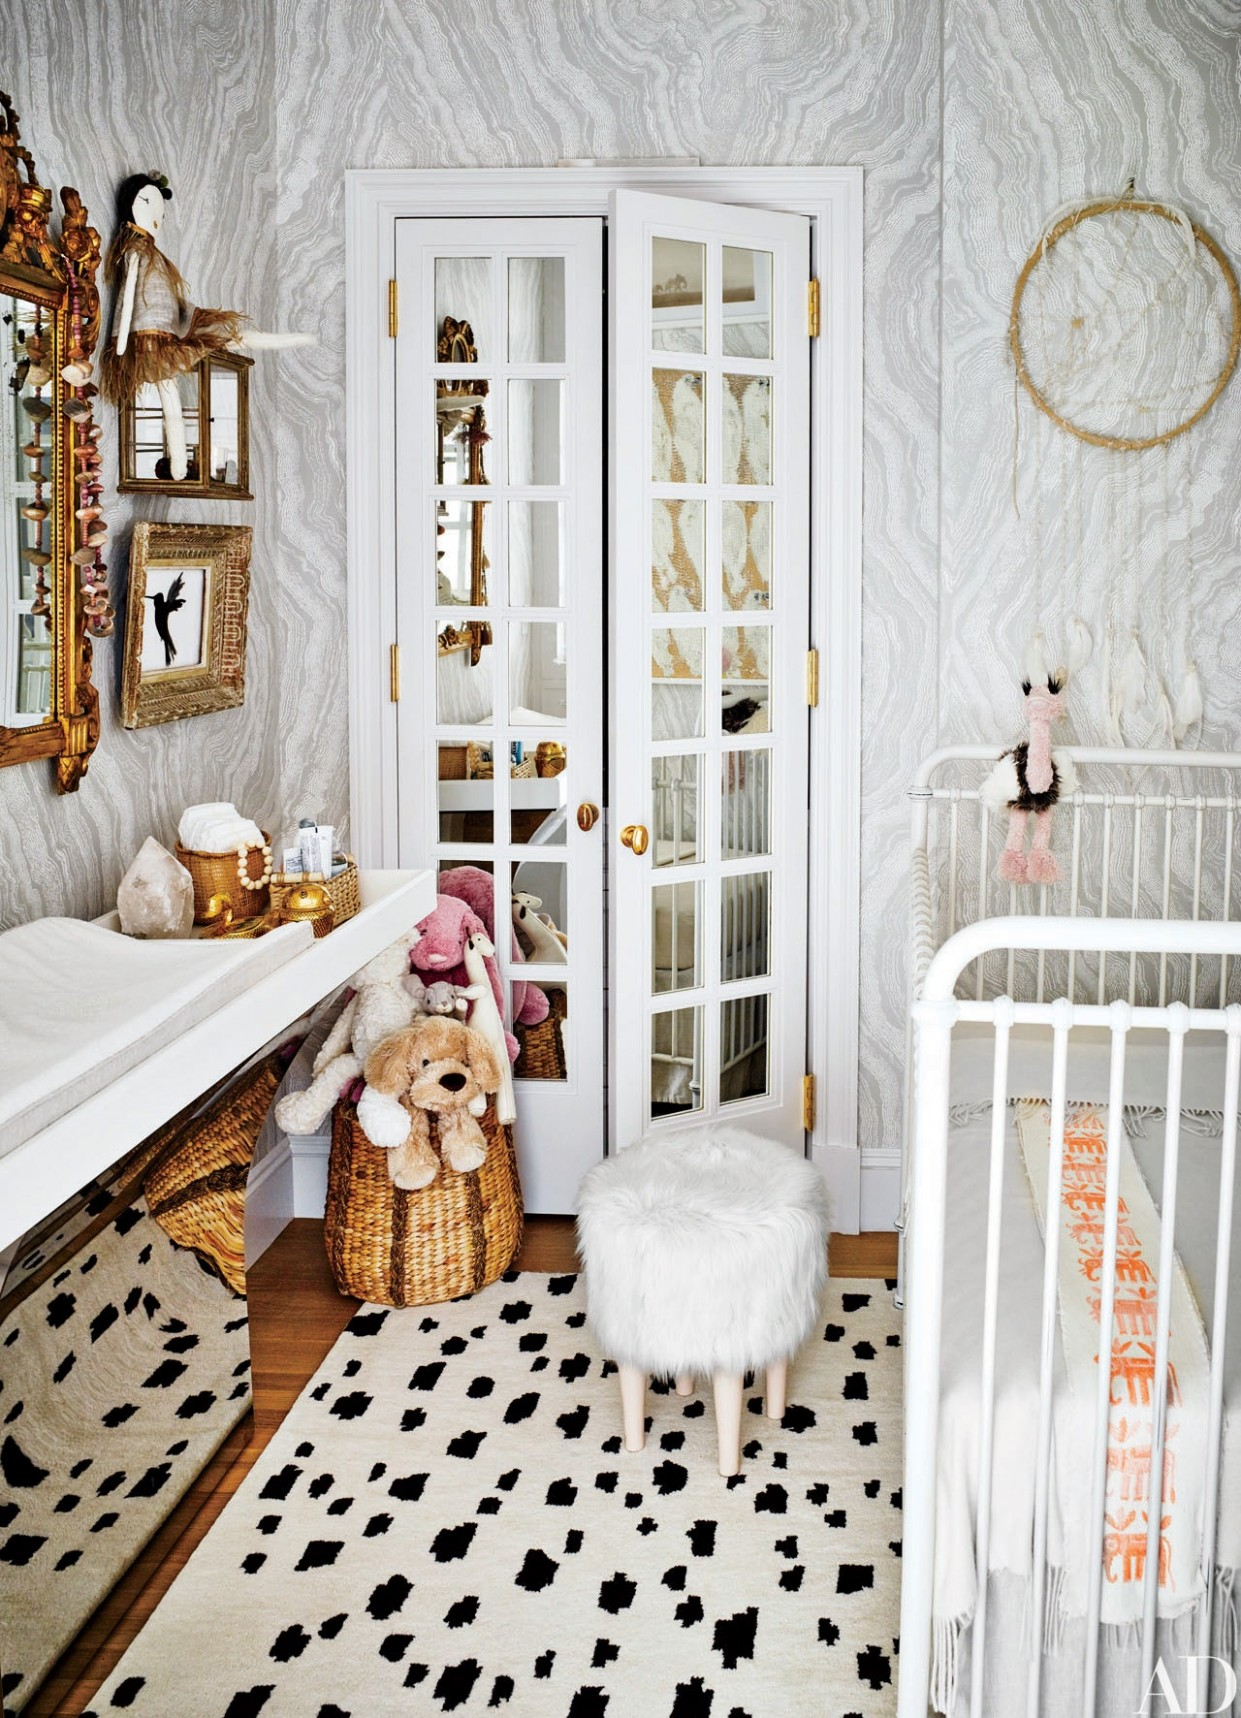 12 Stylish Kids Bedroom & Nursery Ideas  Architectural Digest - Baby Room Pacific Place